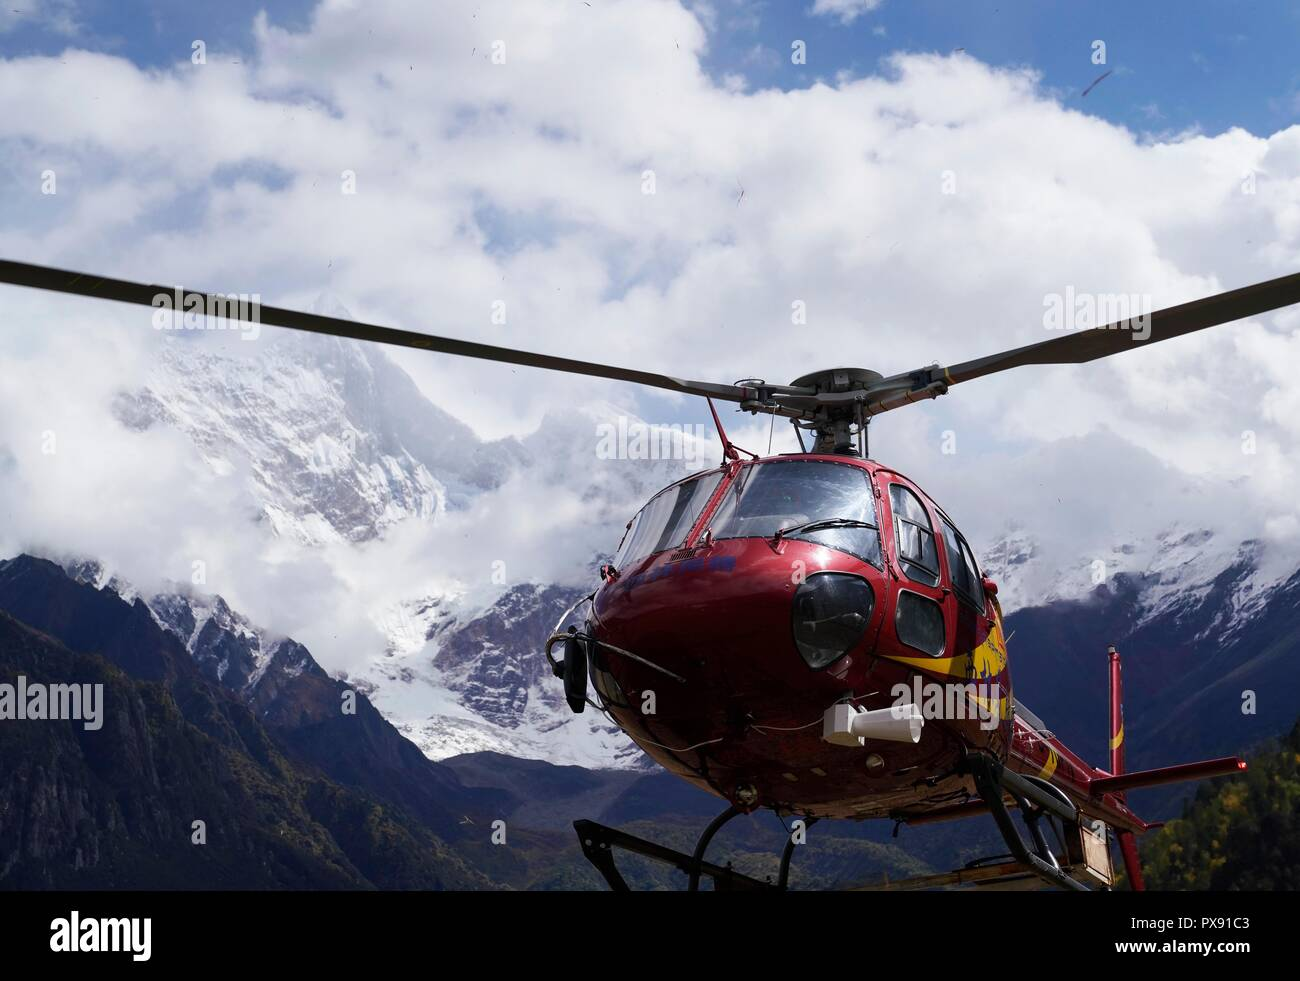 Menling, China's Tibet Autonomous Region. 20th Oct, 2018. A helicopter carries relief materials for the lanslide-caused barrier lake disaster area in Menling County, southwest China's Tibet Autonomous Region, on Oct. 20, 2018. A helicopter from Xilin Fengteng General Aviation Co., Ltd. took part in the disaster relief to transport relief materials. The barrier lake was formed near a village in Menling County after landslides on Wednesday and Thursday blocked the Yarlung Tsangpo River's waterway. Credit: Purbu Zhaxi/Xinhua/Alamy Live News - Stock Image